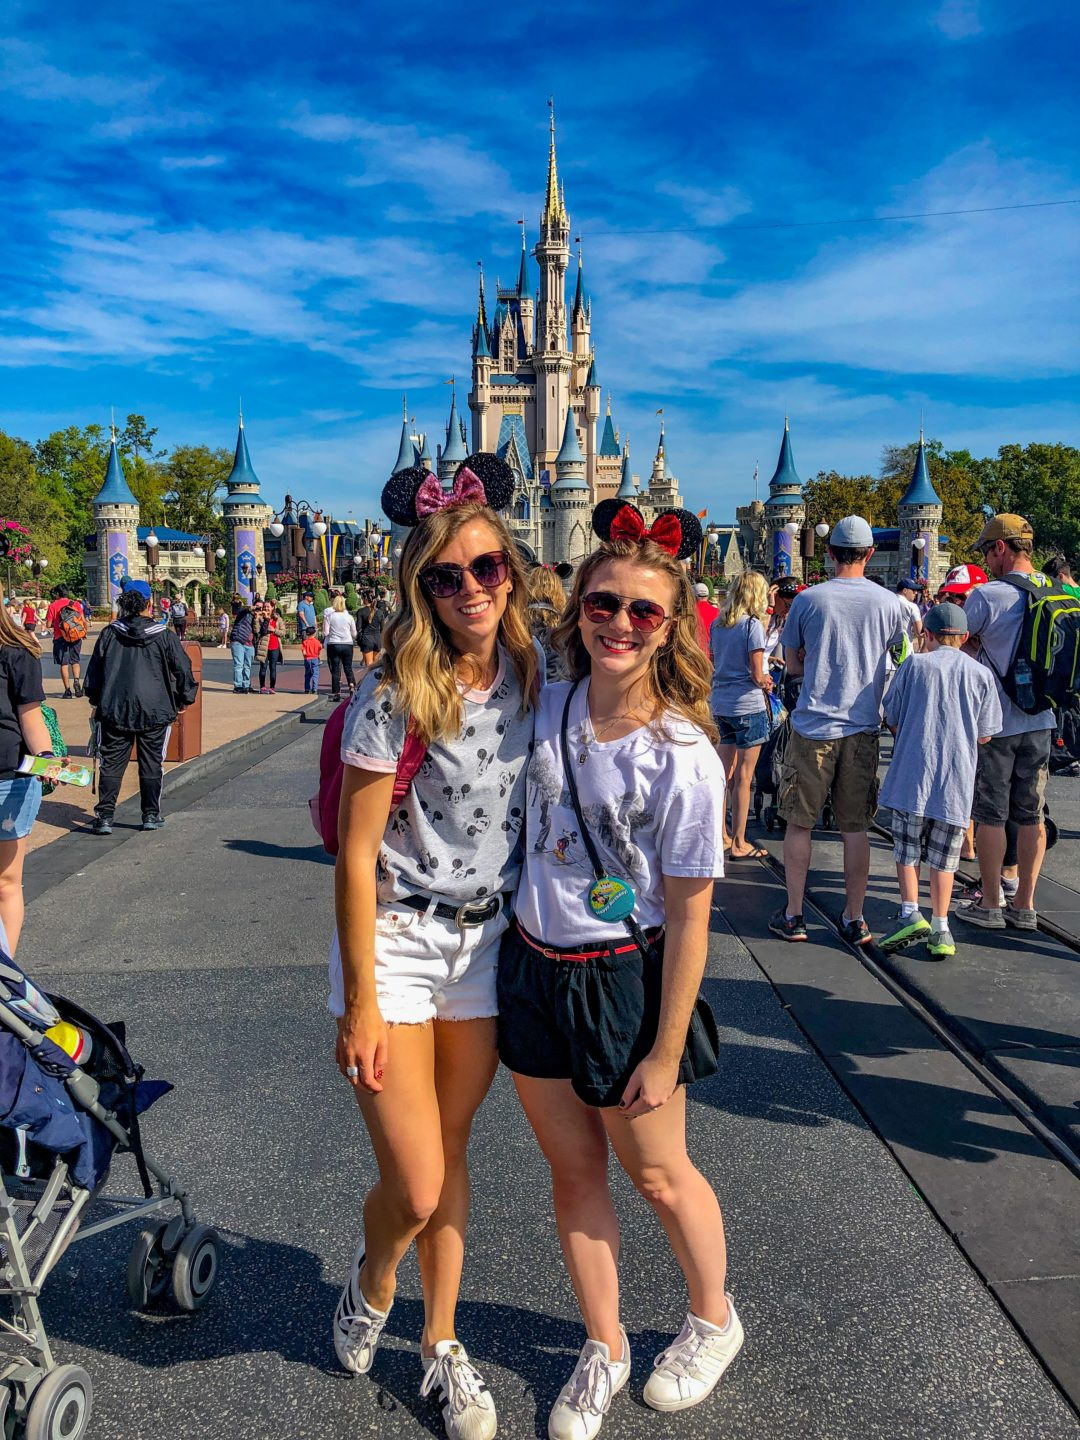 Best of Disney World Parks for Adults